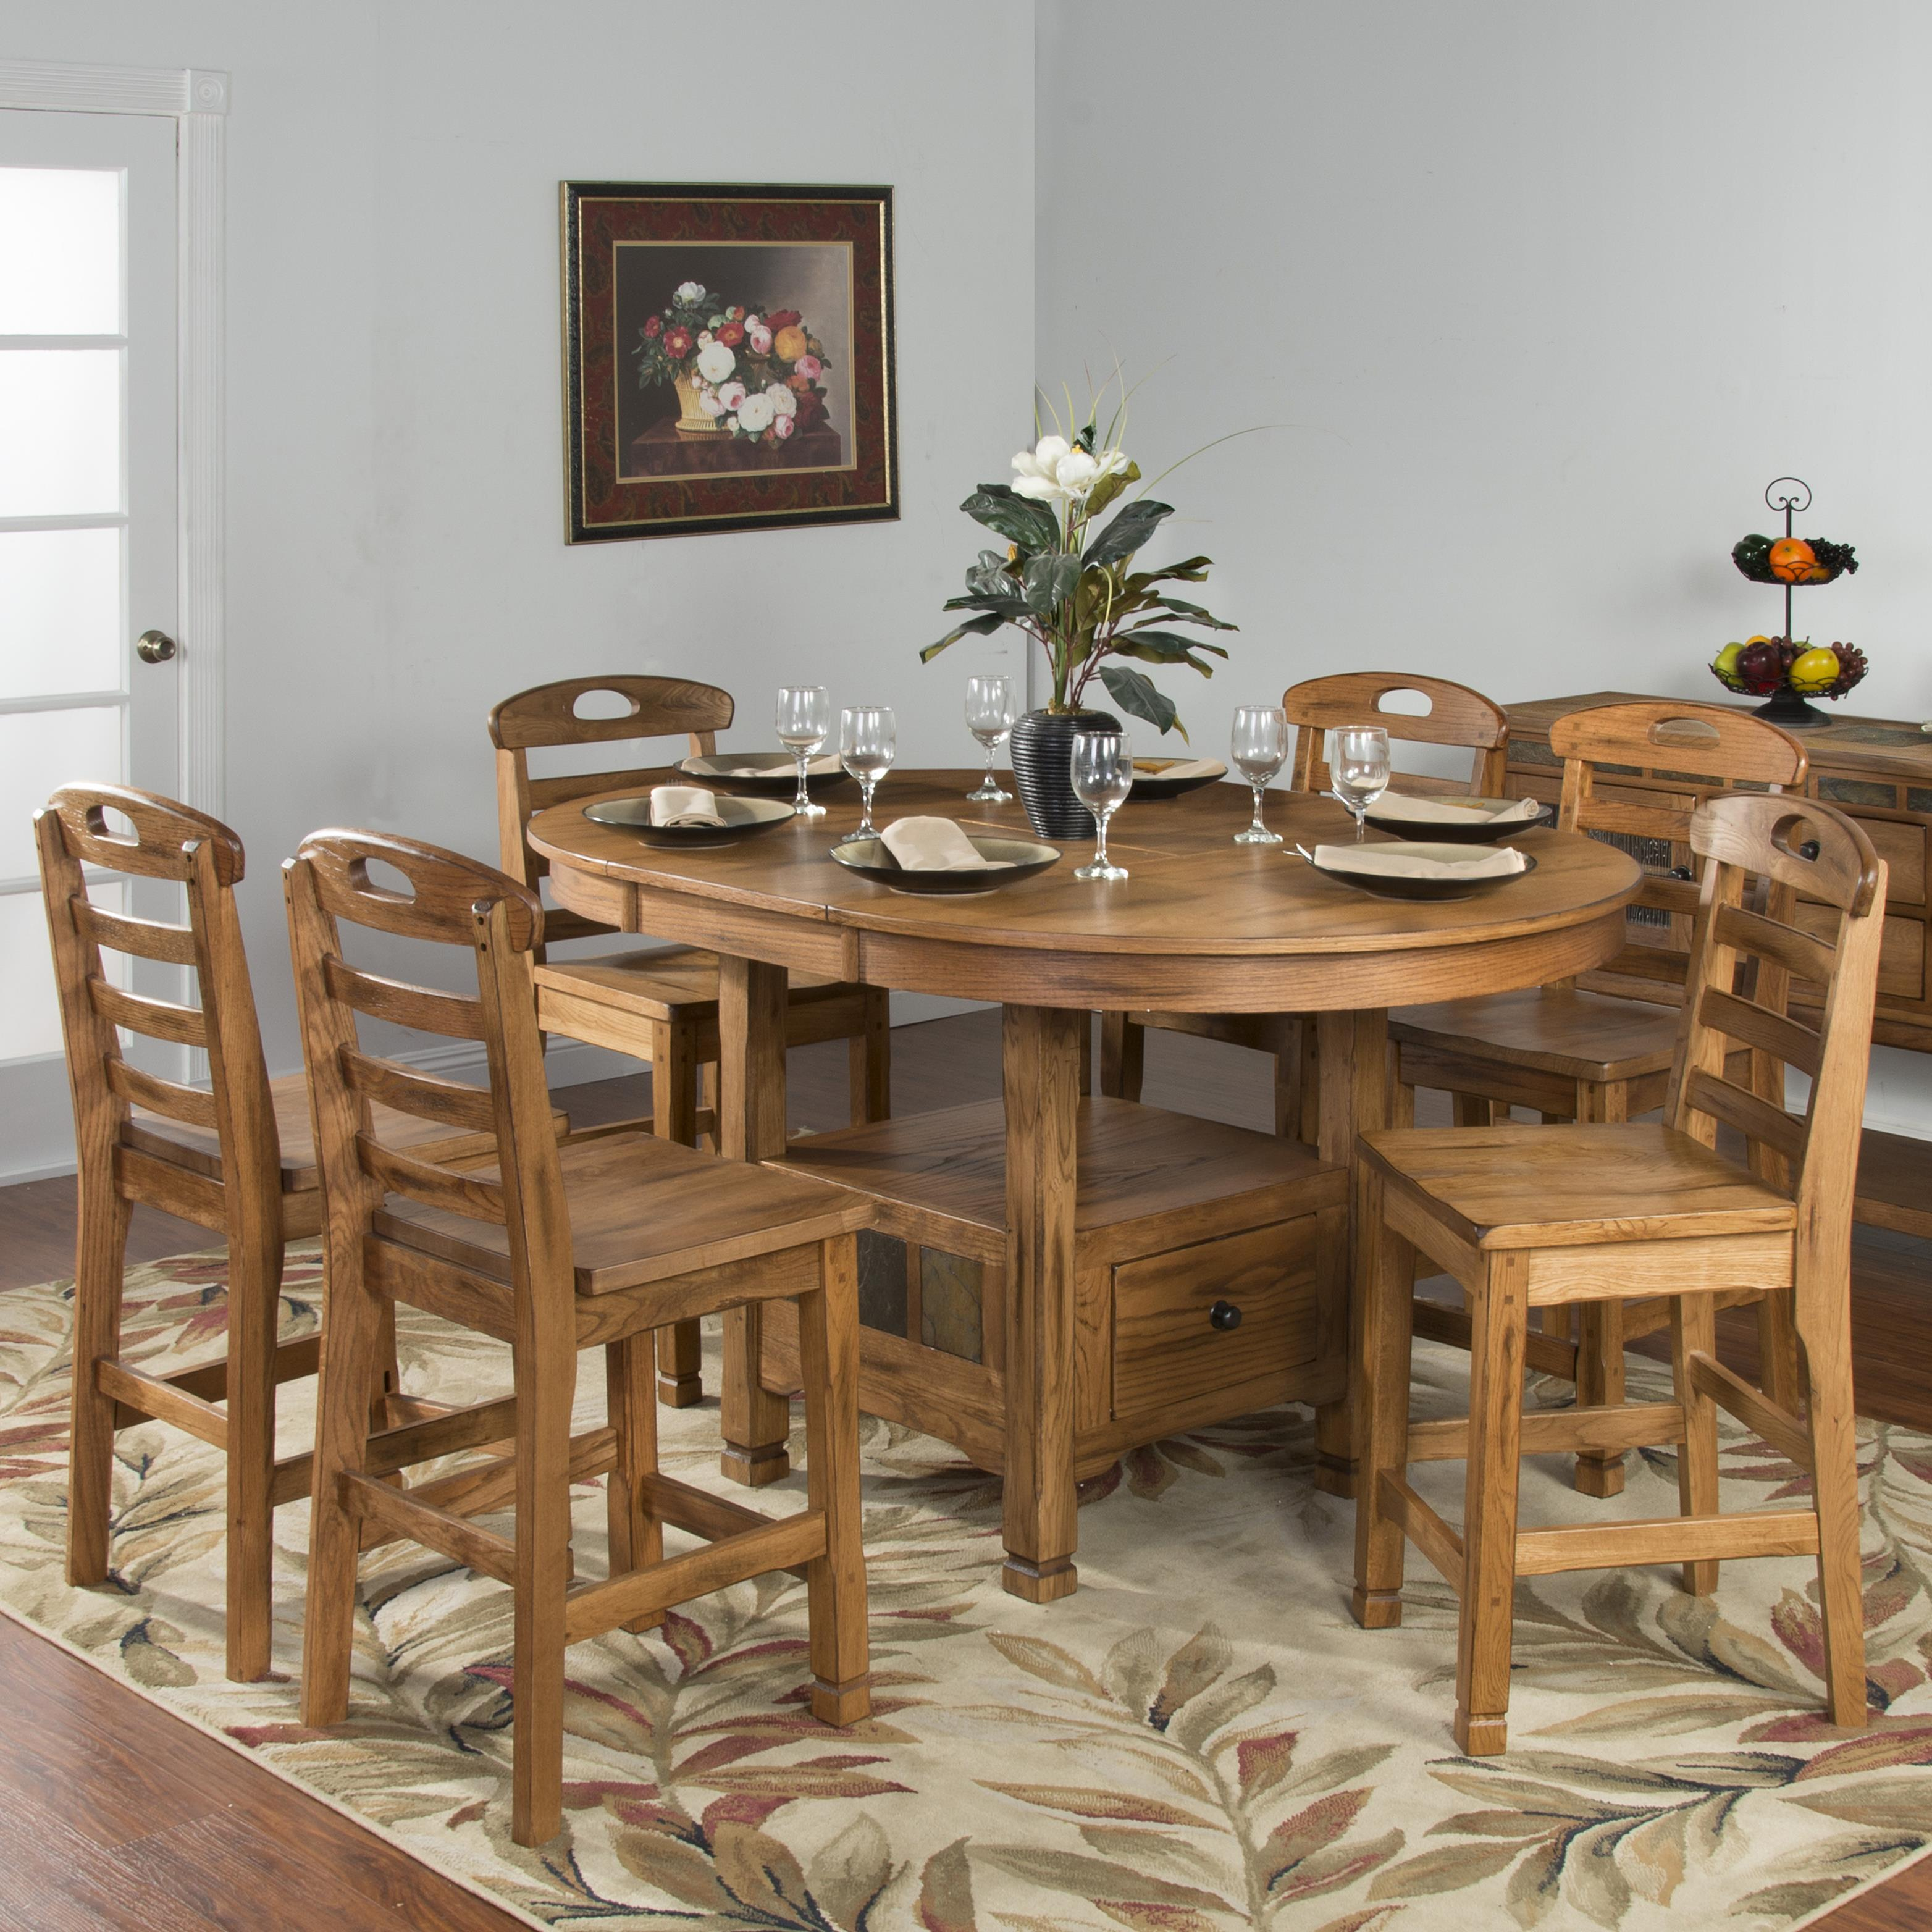 Sedona rustic oak 7 piece dining set by sunny designs for Dining set design ideas